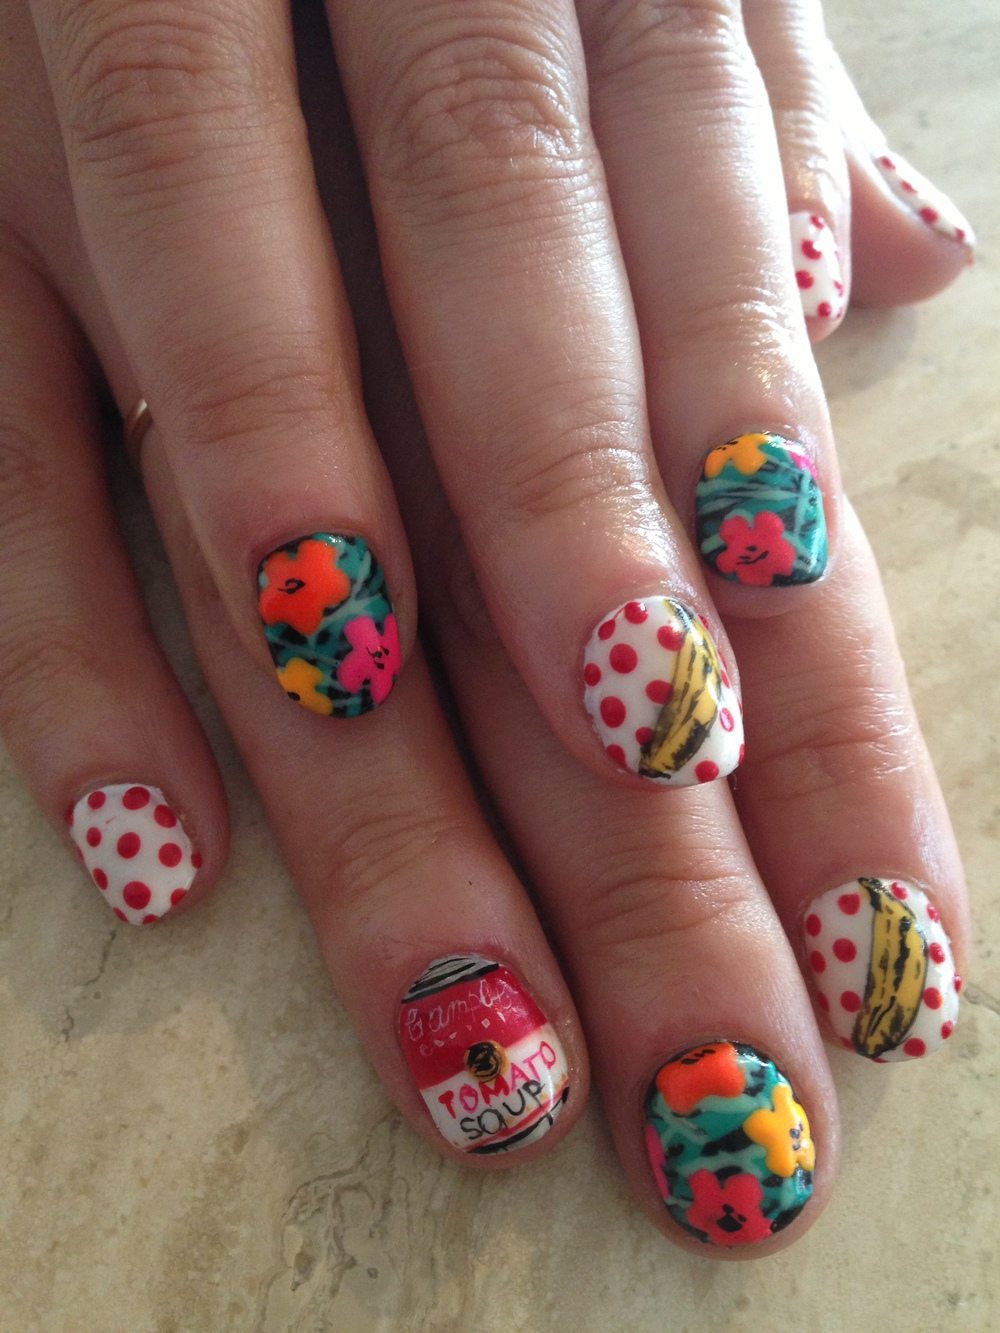 Another manicure they did for someone else with a Warhol theme.